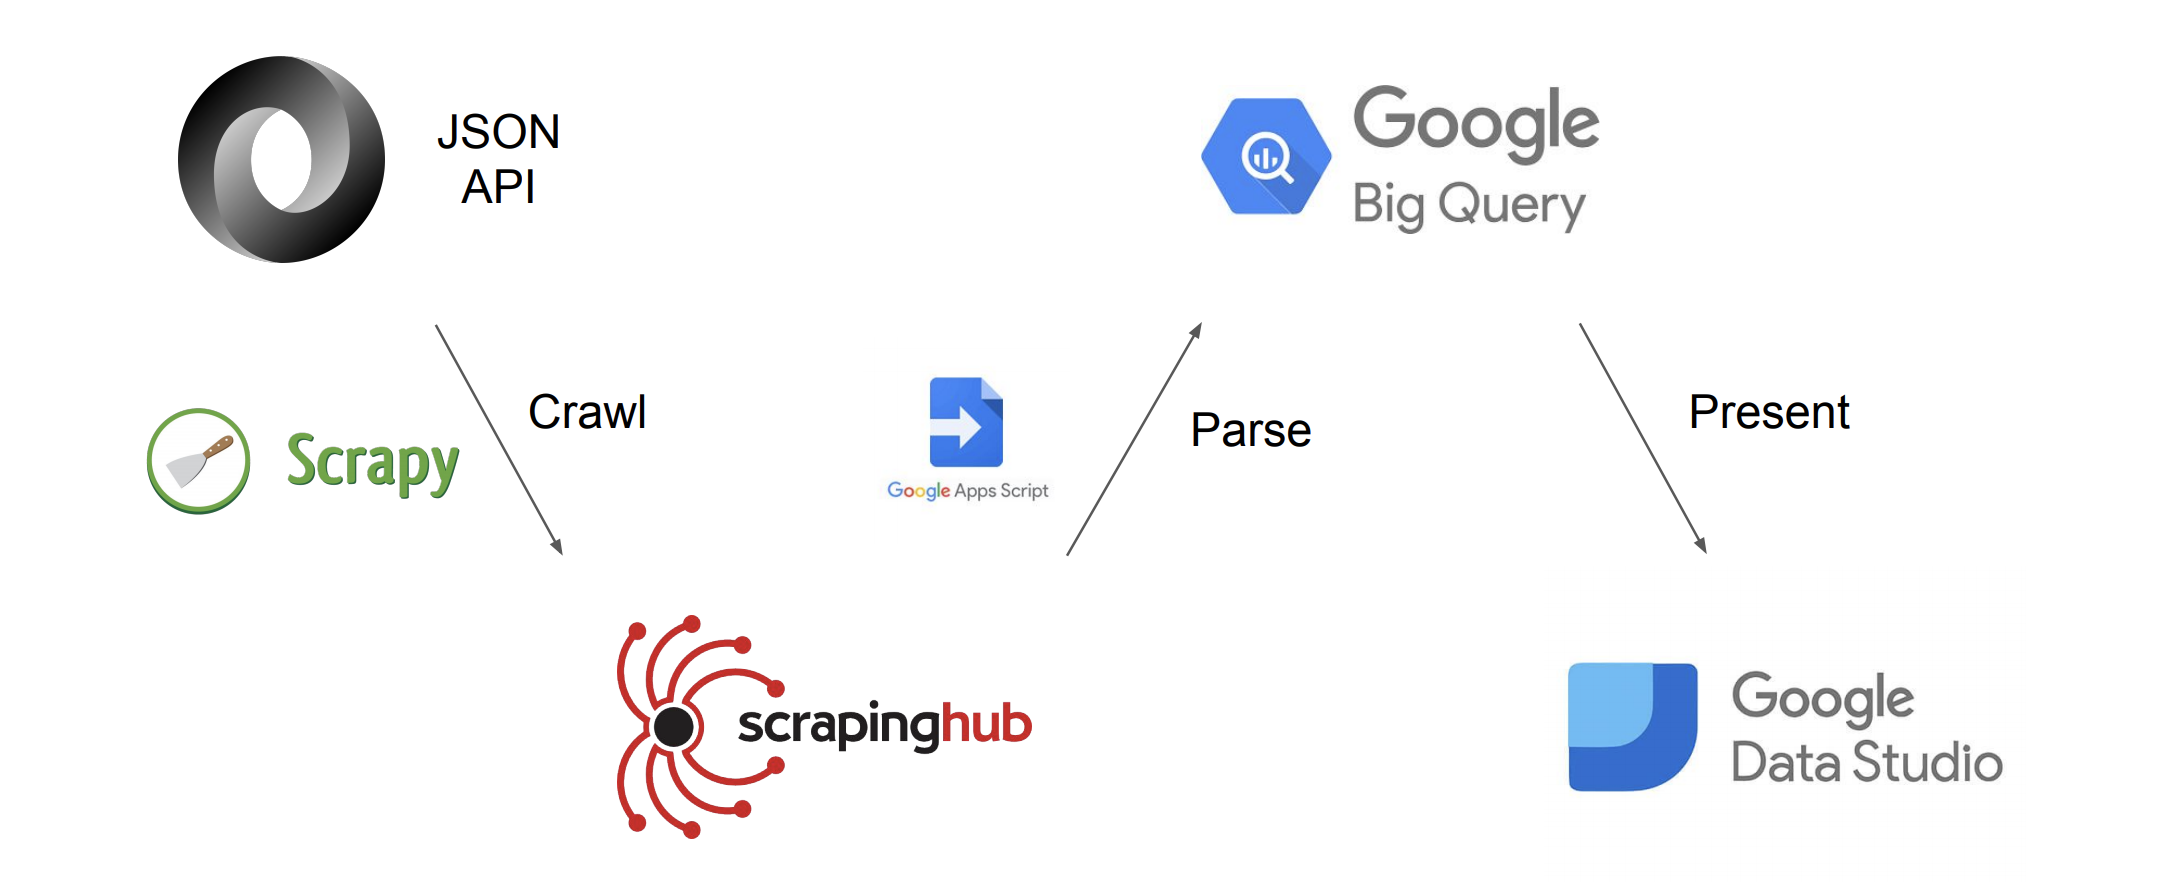 Crawling a JSON API into Google DataStudio - Jye SR - Medium